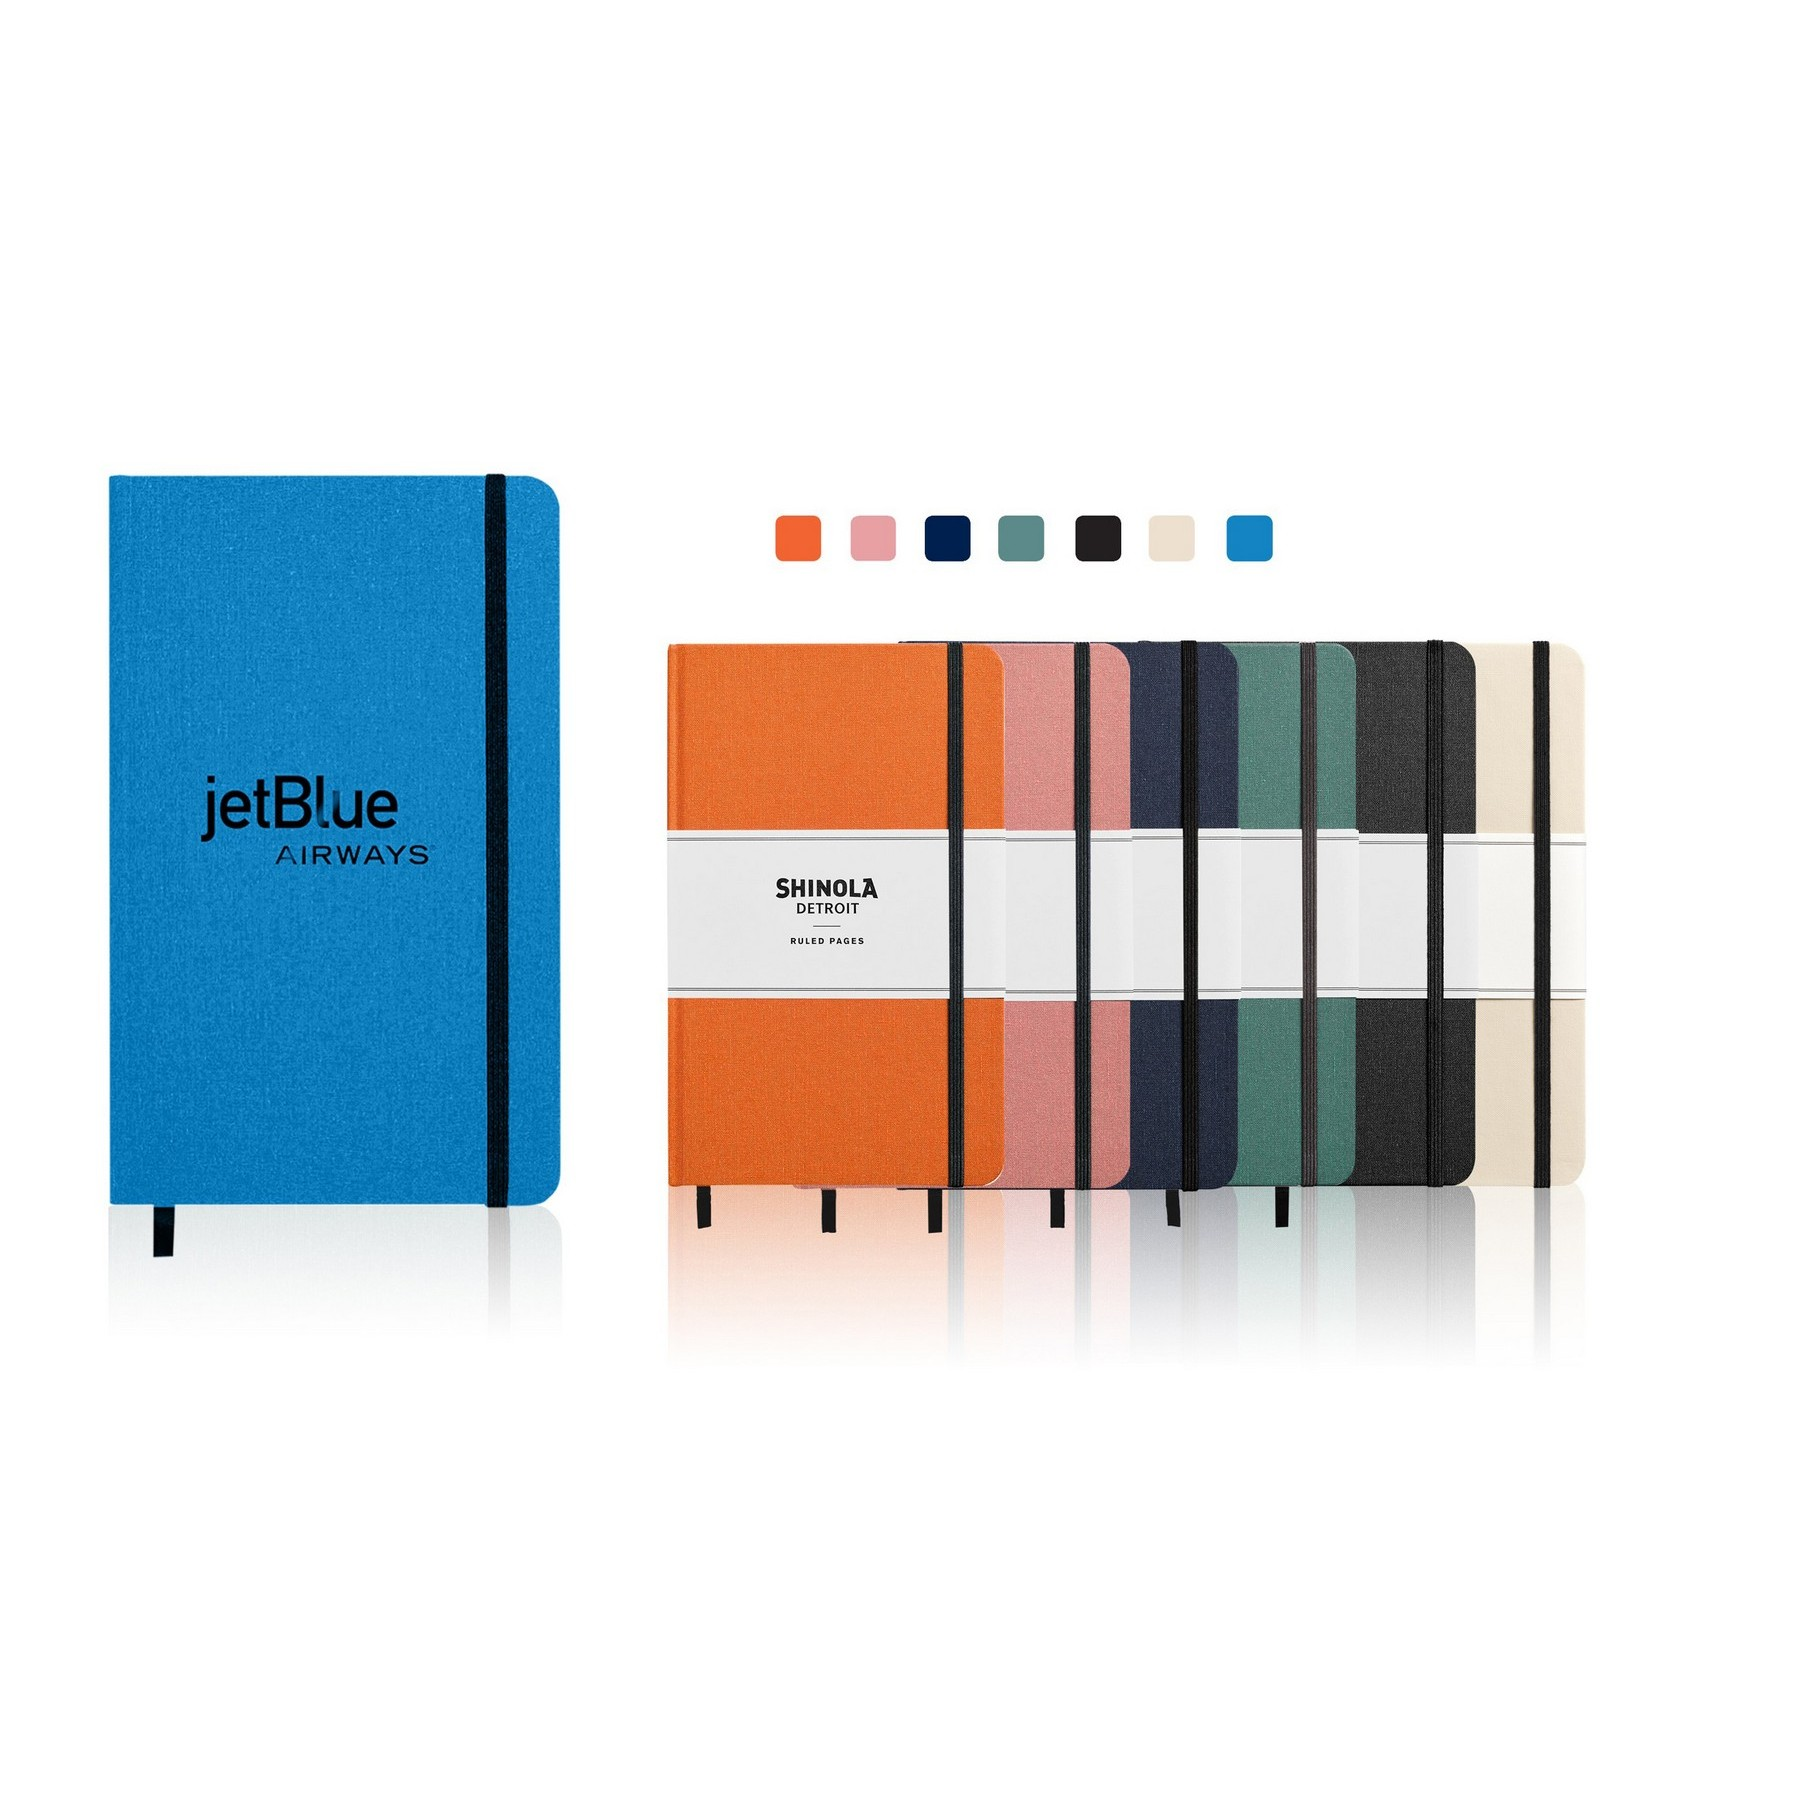 Shinola Linen Hardcover Journal - Large